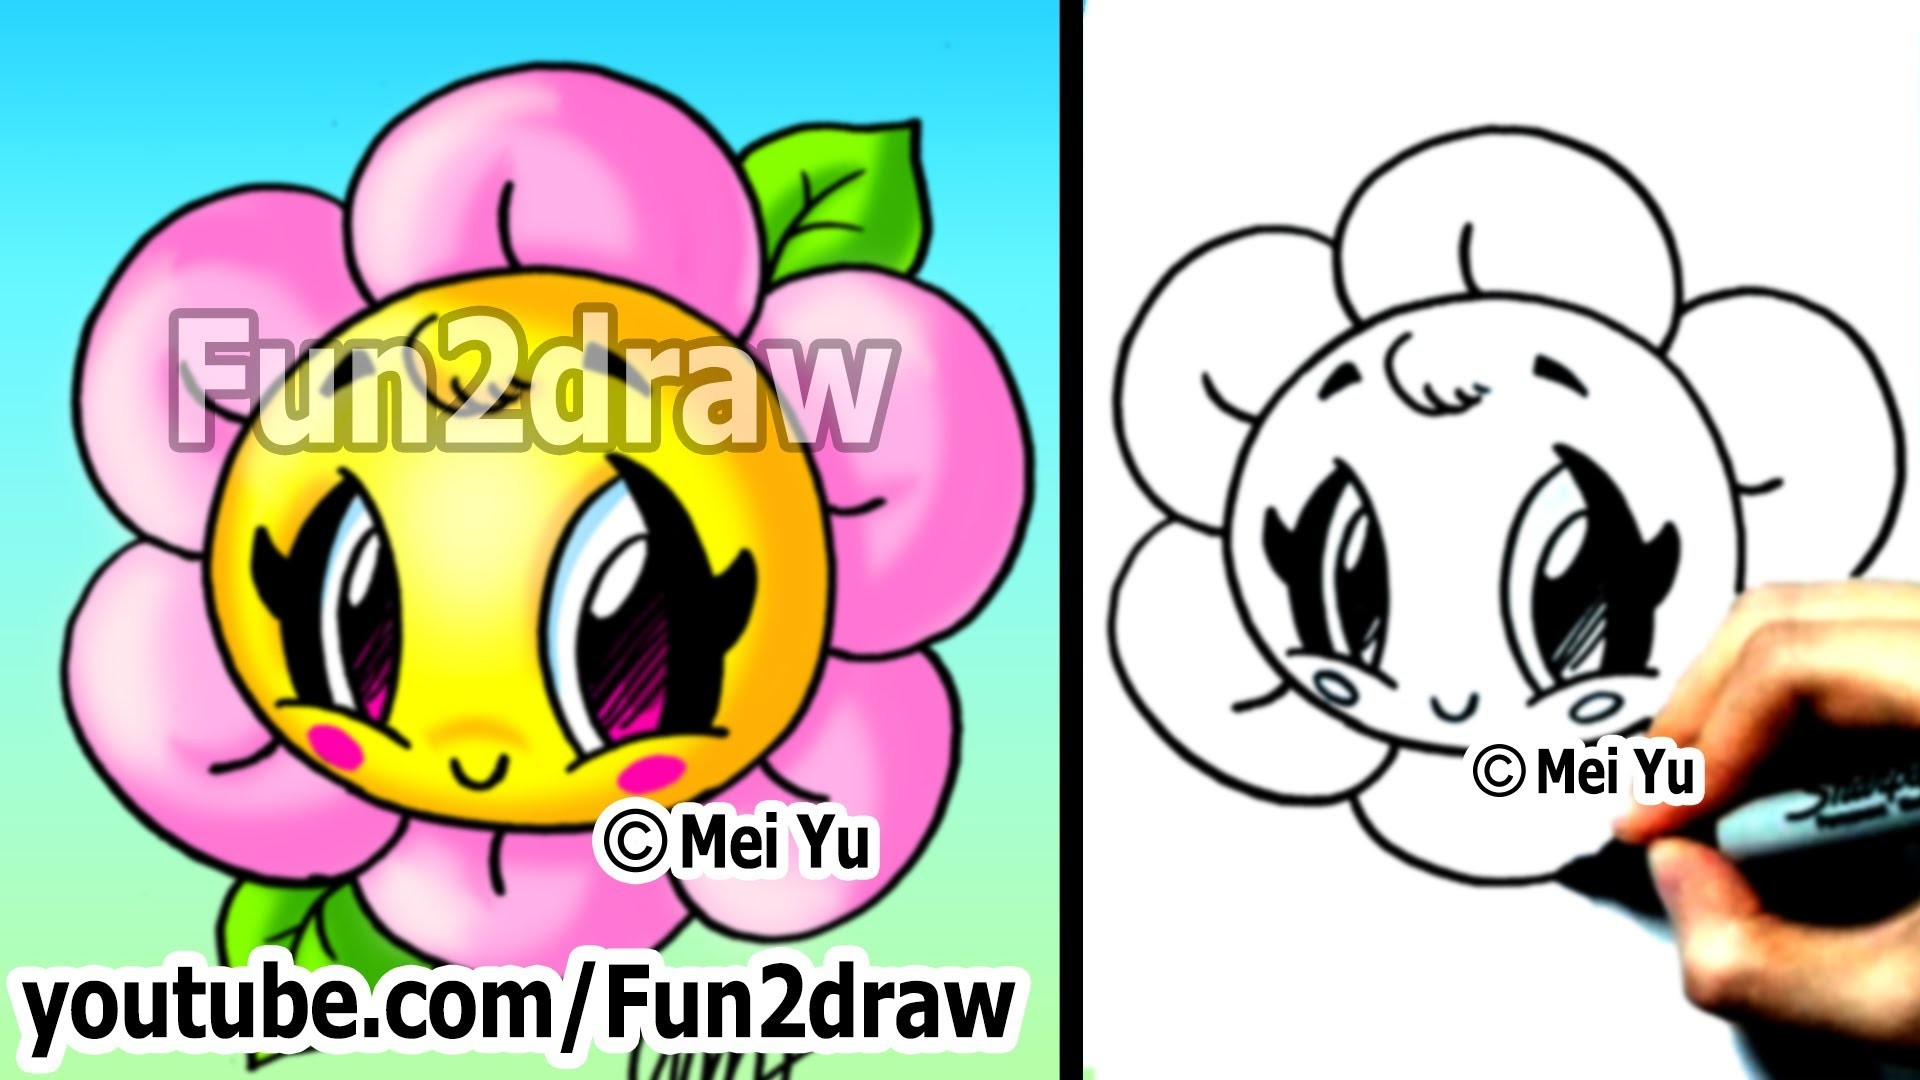 Kawaii Tutorial - How to Draw a Flower - Cute & Easy! - Popular Drawing Channels - Fun2draw